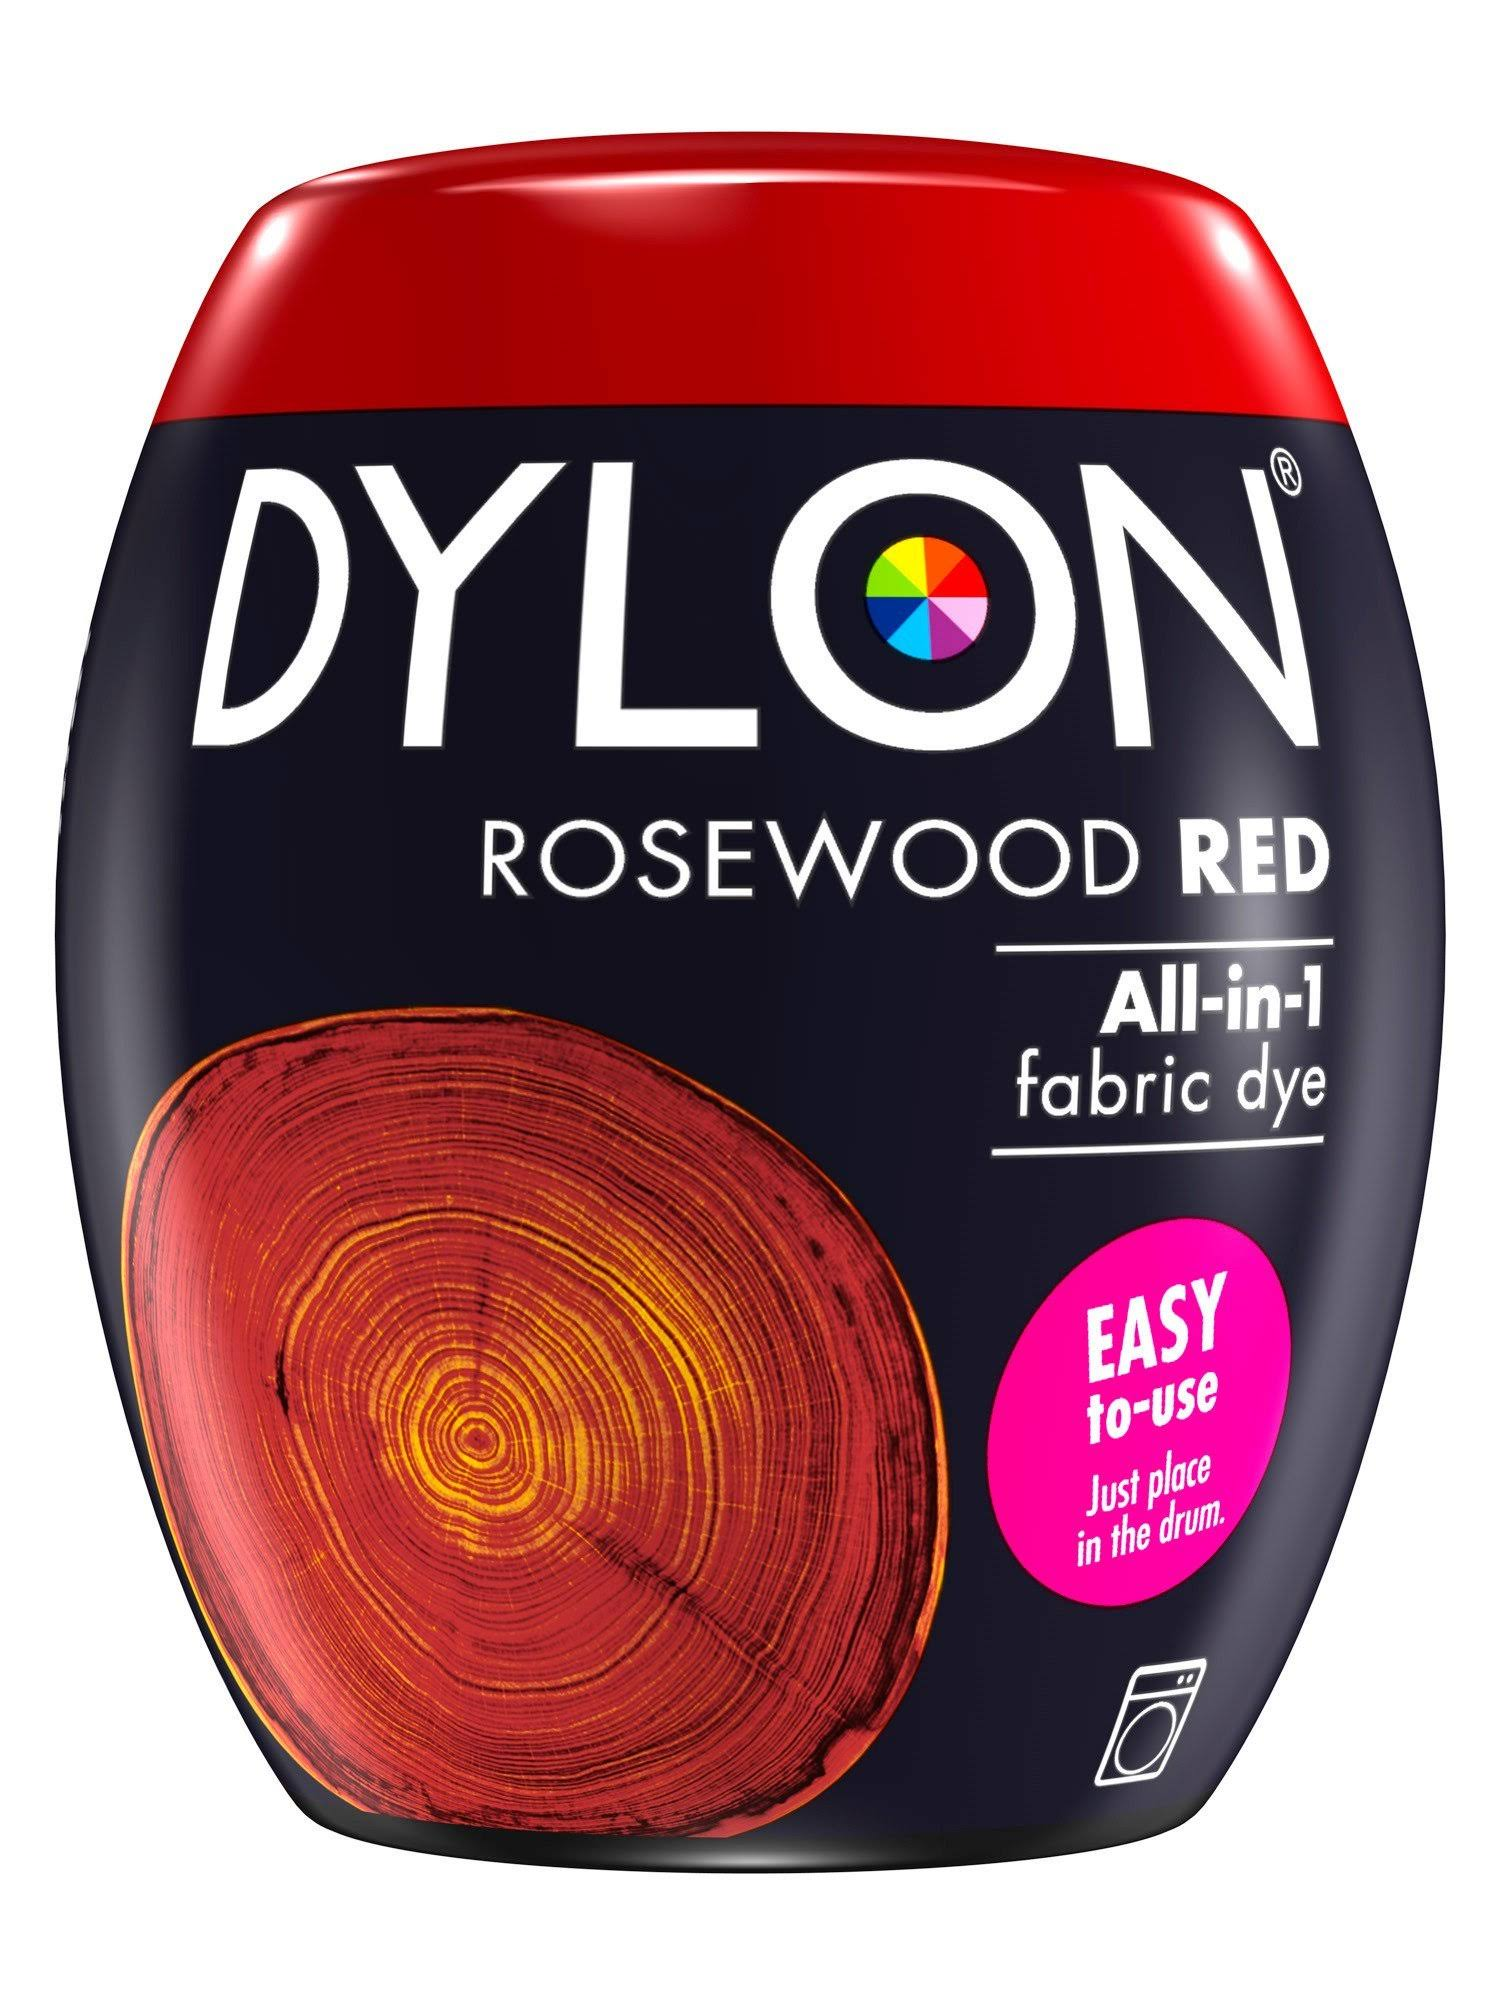 Dylon All in One Fabric Dye - Rosewood Red, 350g